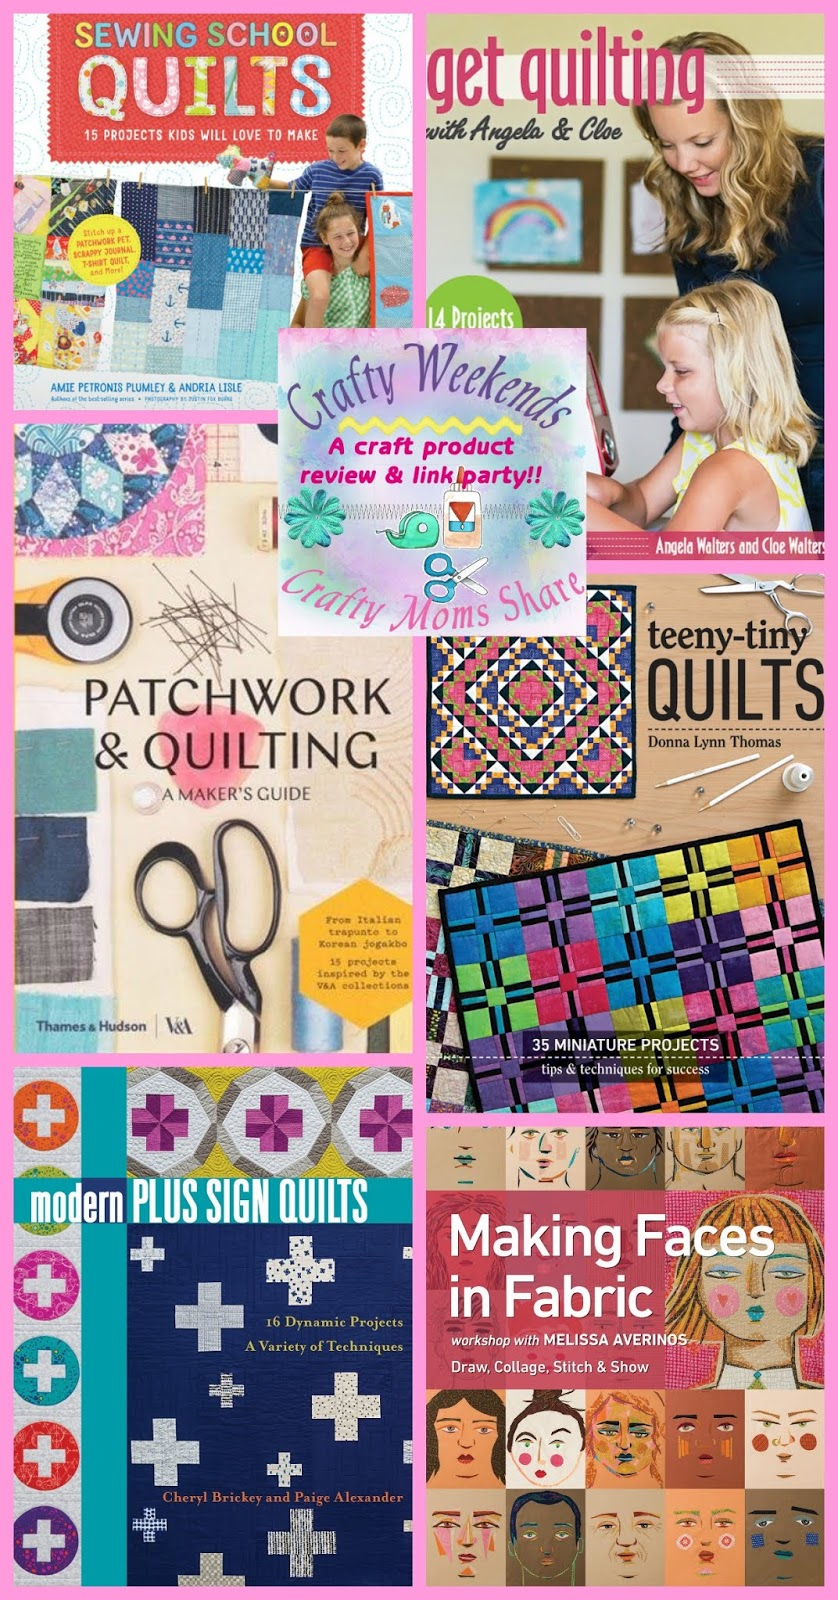 Crafty Moms Share Quilt Projects New Books A Crafty Weekends